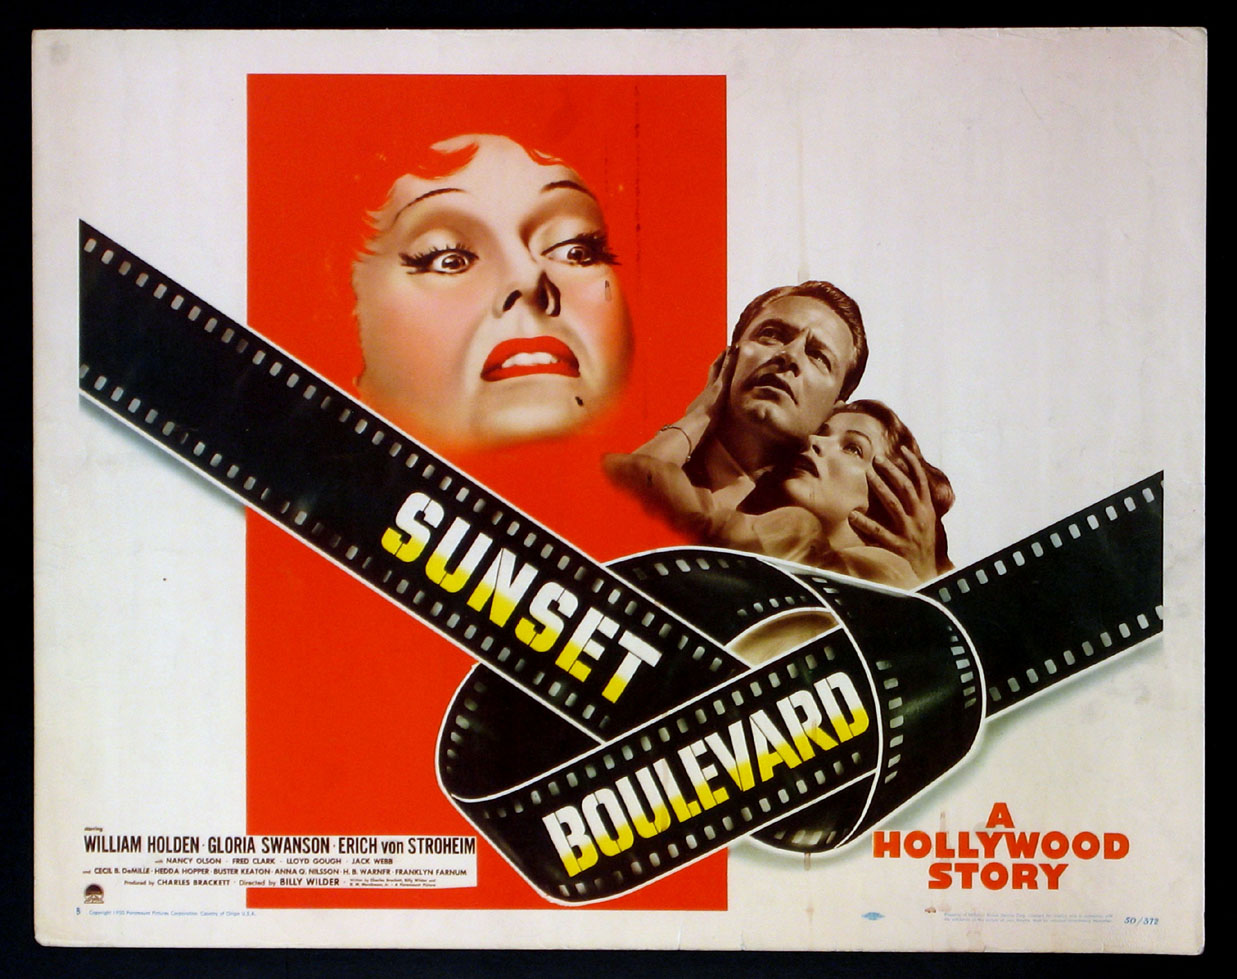 Image result for sunset boulevard poster 1950